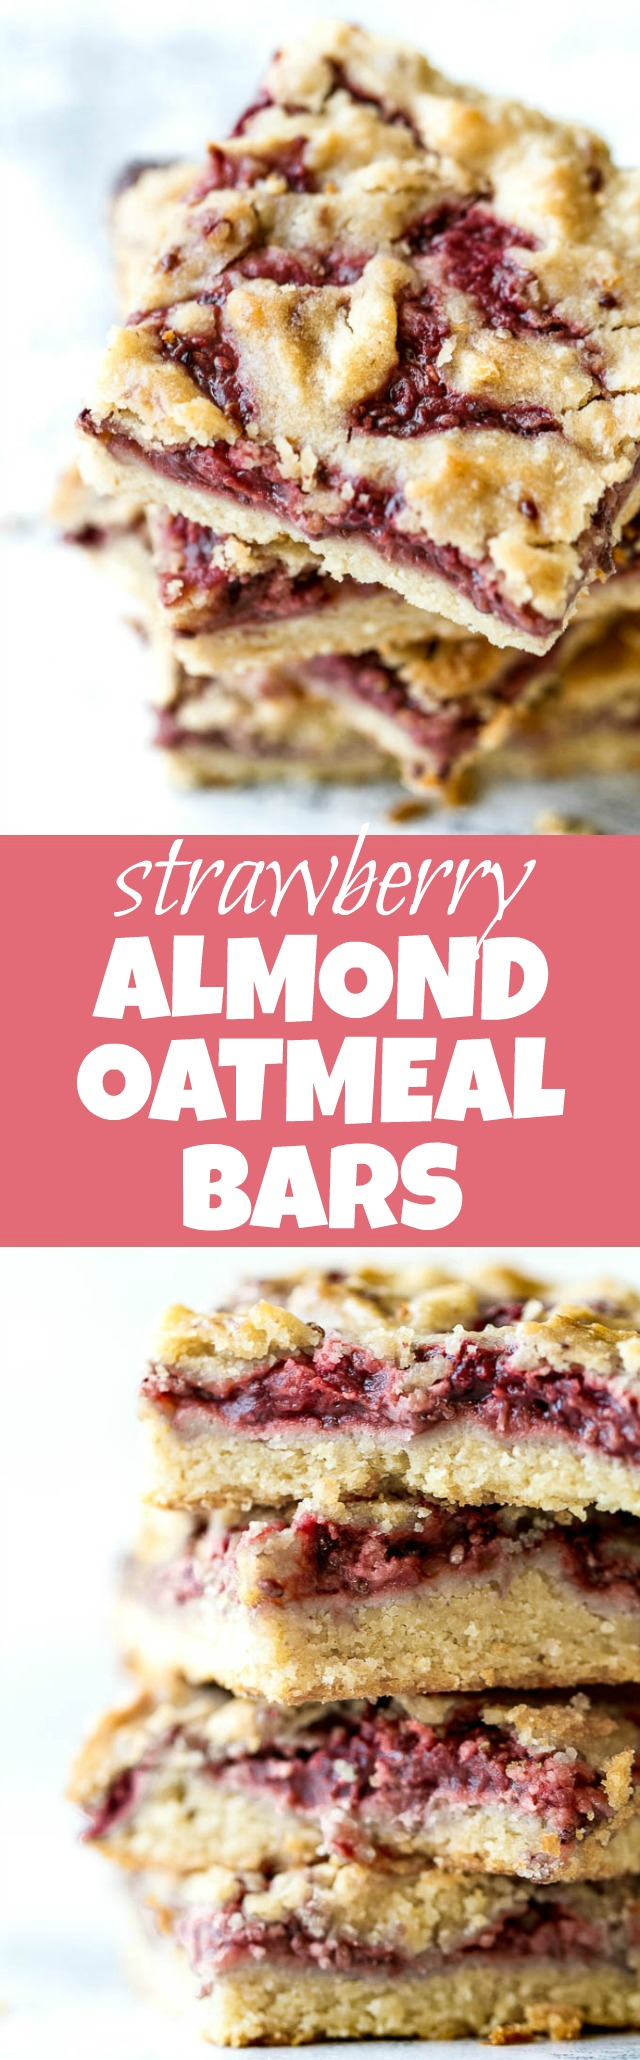 Strawberry Almond Oat Bars - so tender and buttery that you'd never guess they're made without any flour or butterl! A gluten-free combination of oats and almond flour gives them an irresistibly flaky crust, which pairs beautifully with an easy homemade strawberry chia seed jam | runningwithspoons.com